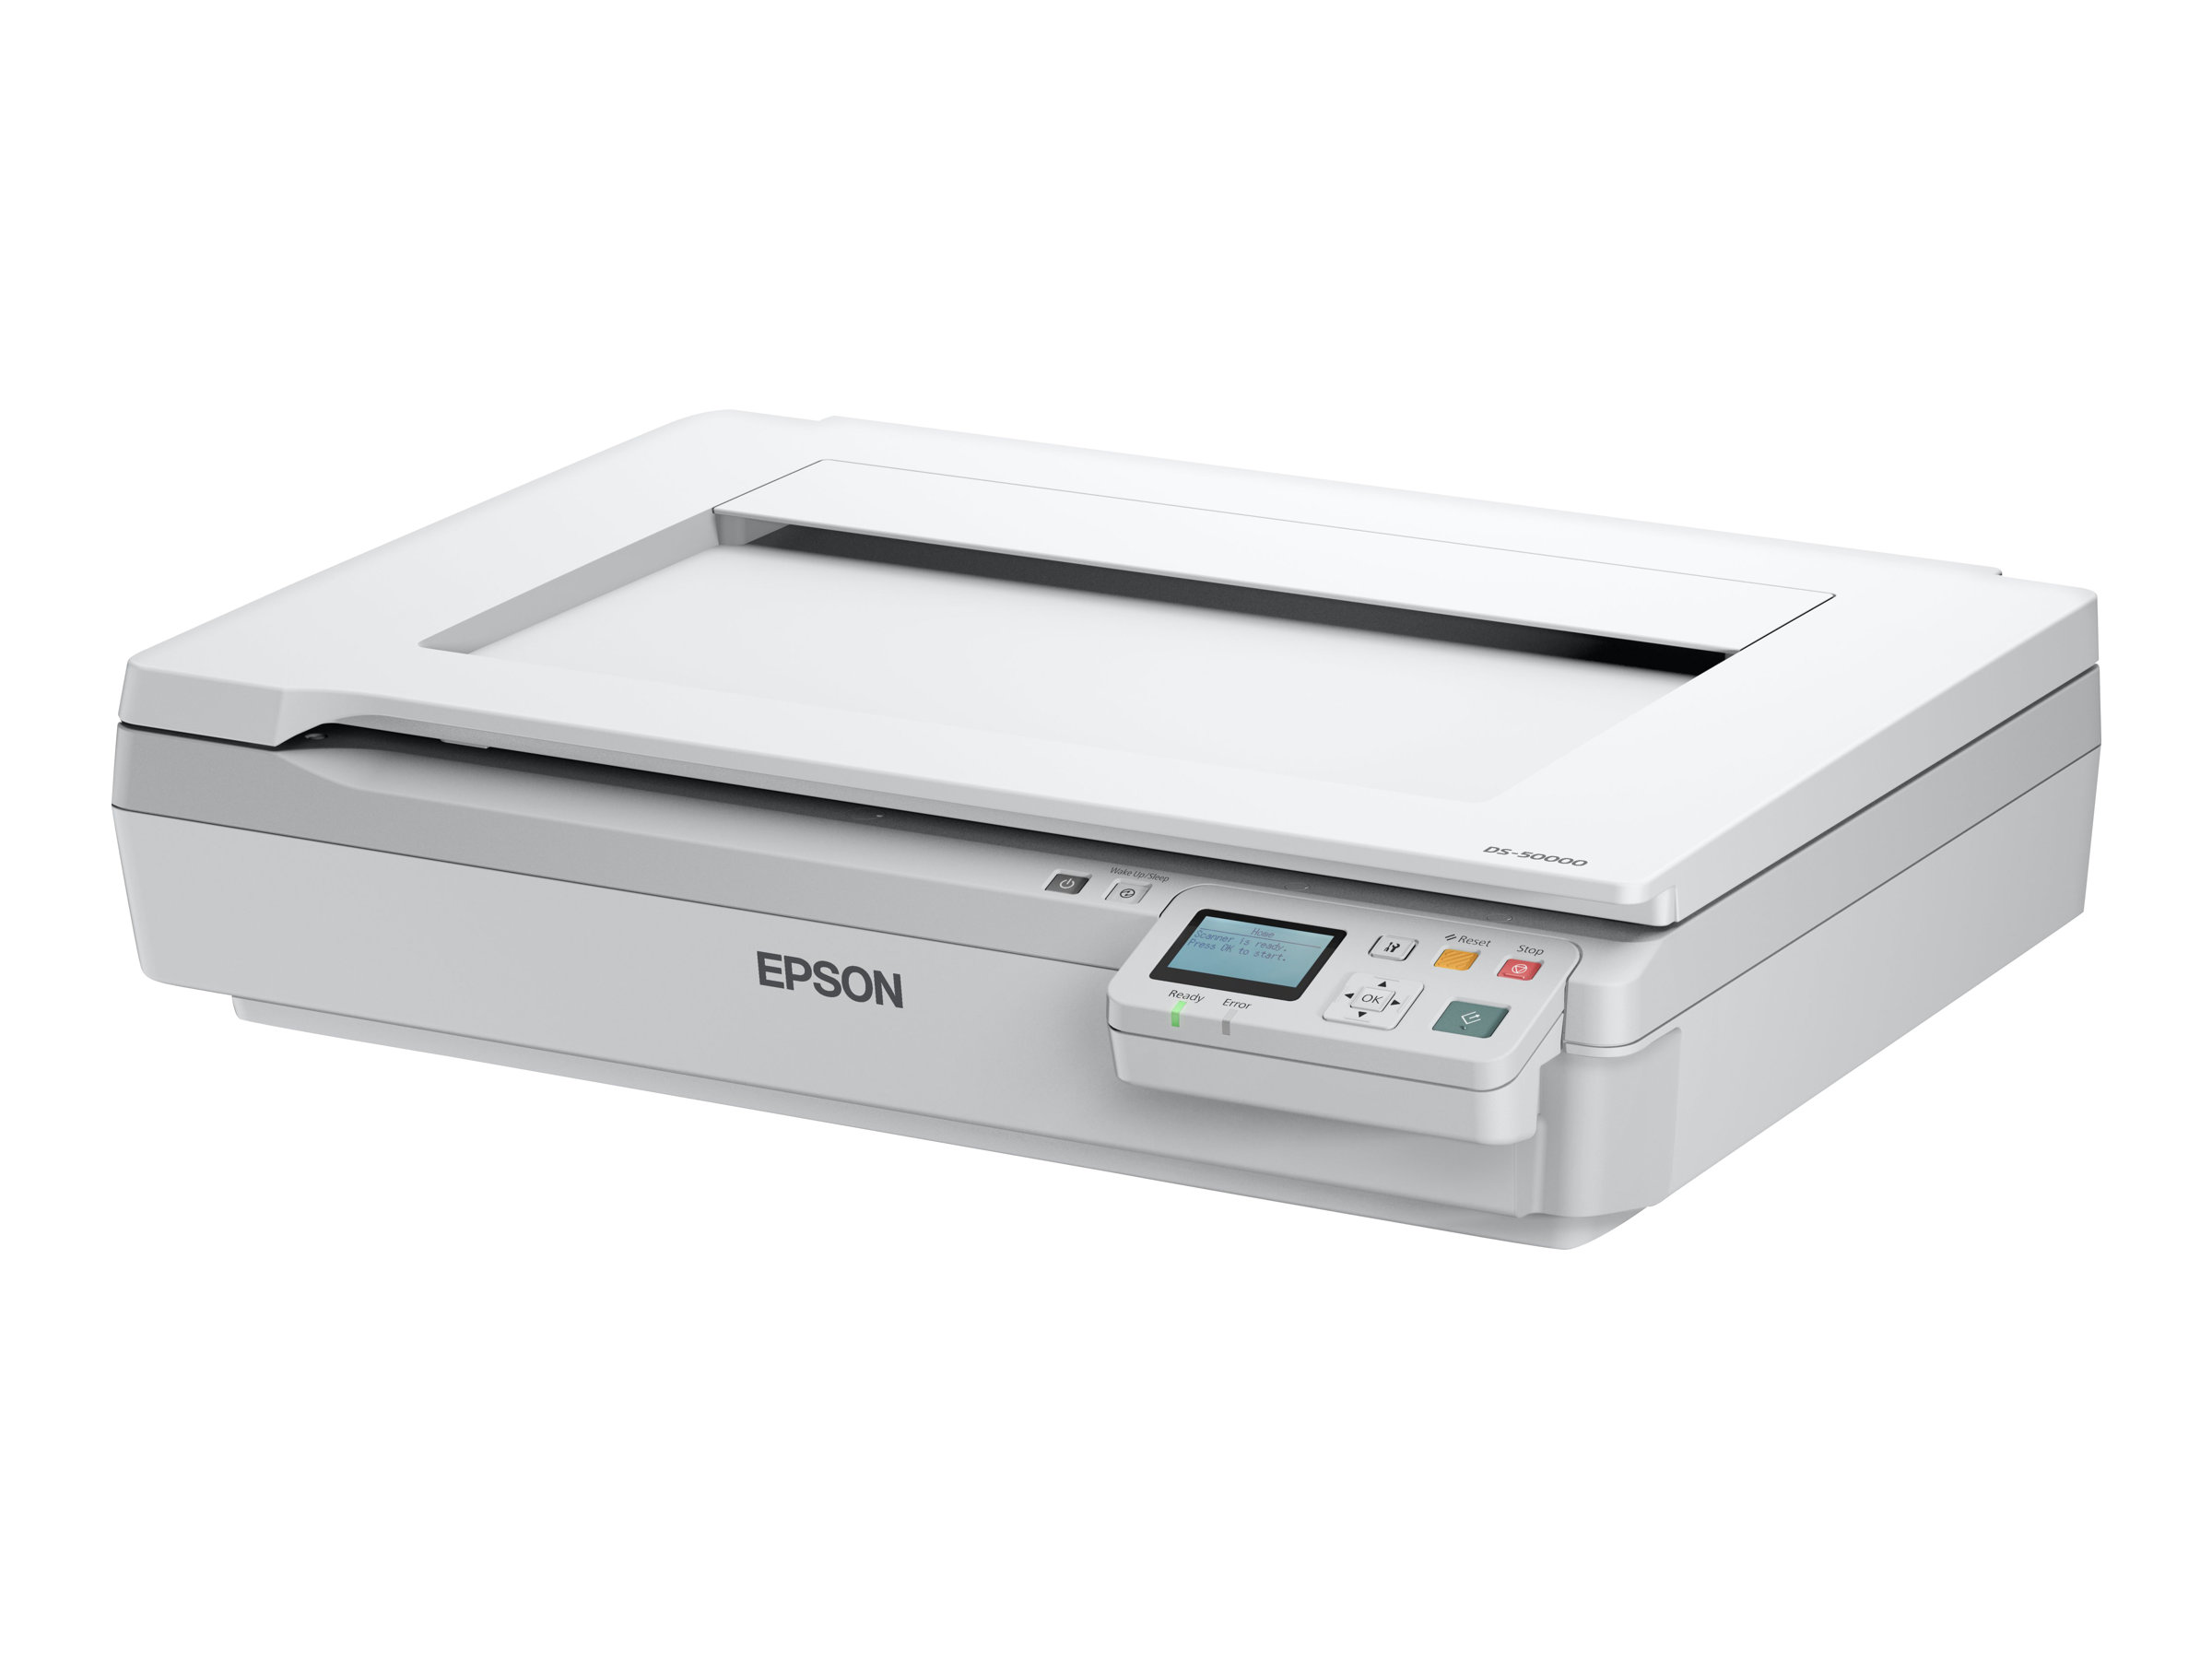 Epson WorkForce DS-50000N - scanner de documents A3 - 600 ppp x 600 ppp - 4ppm